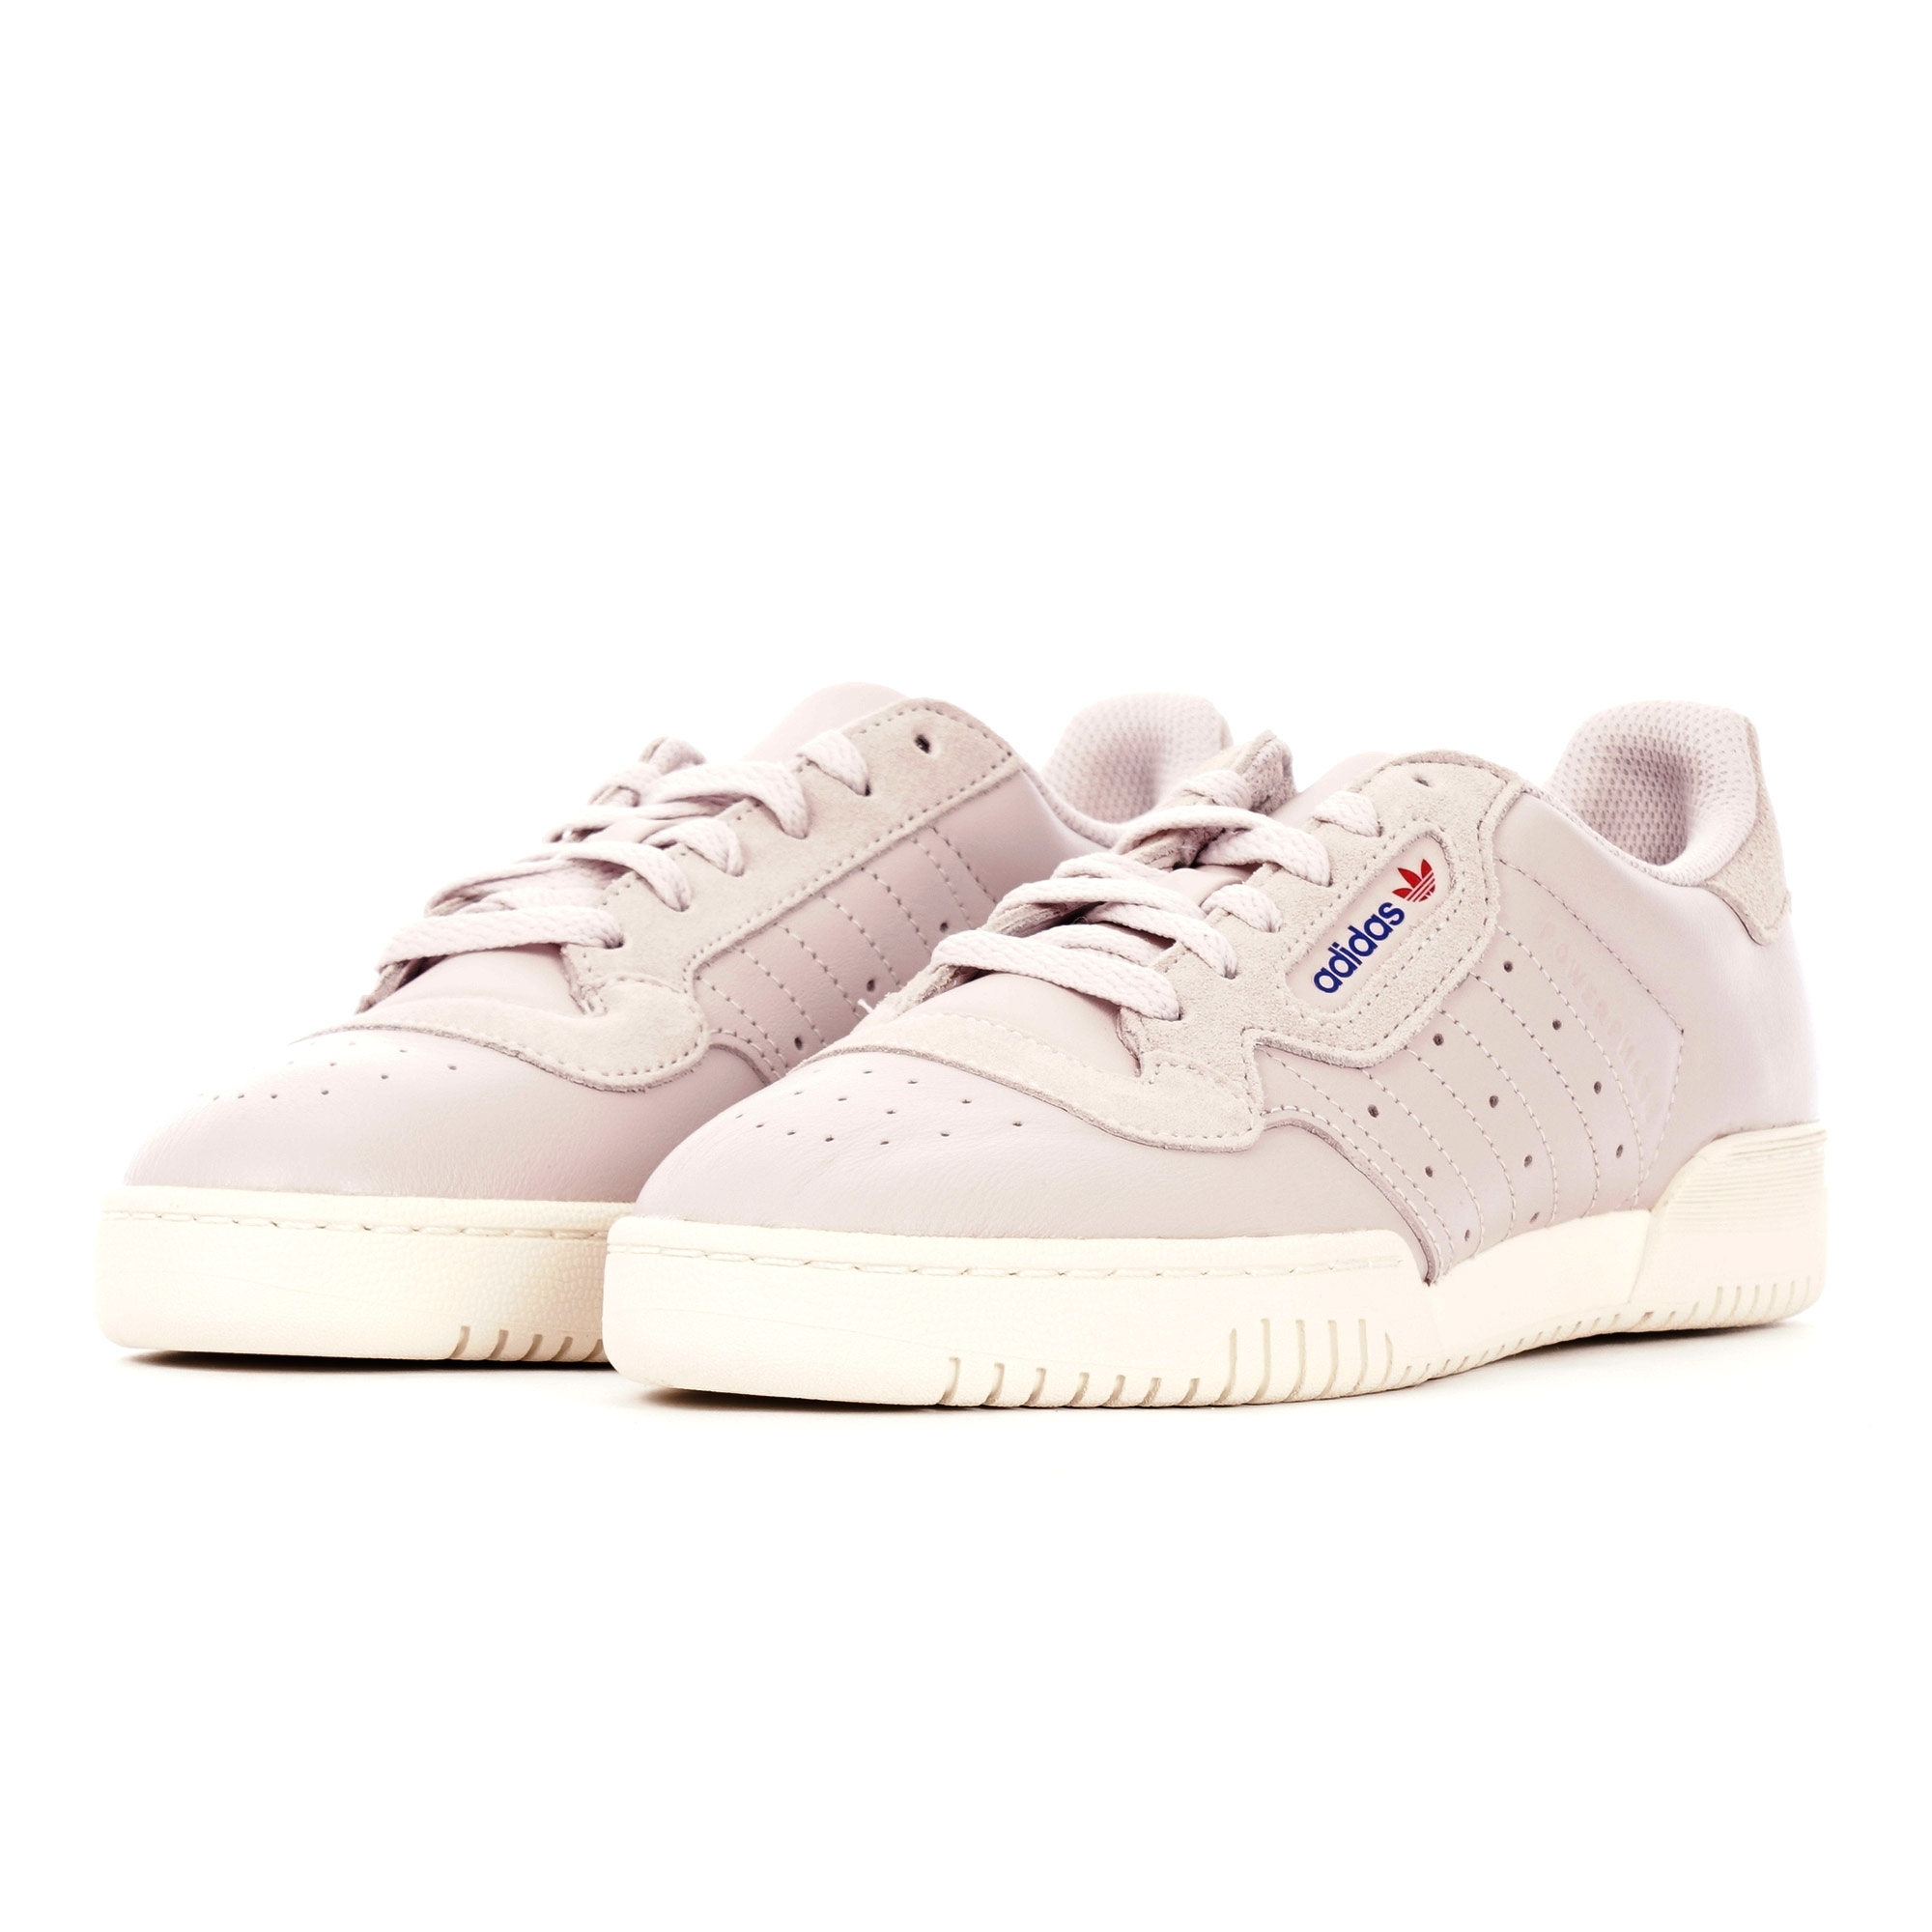 b67add105830d Powerphase - Ice Purple  amp  Off White